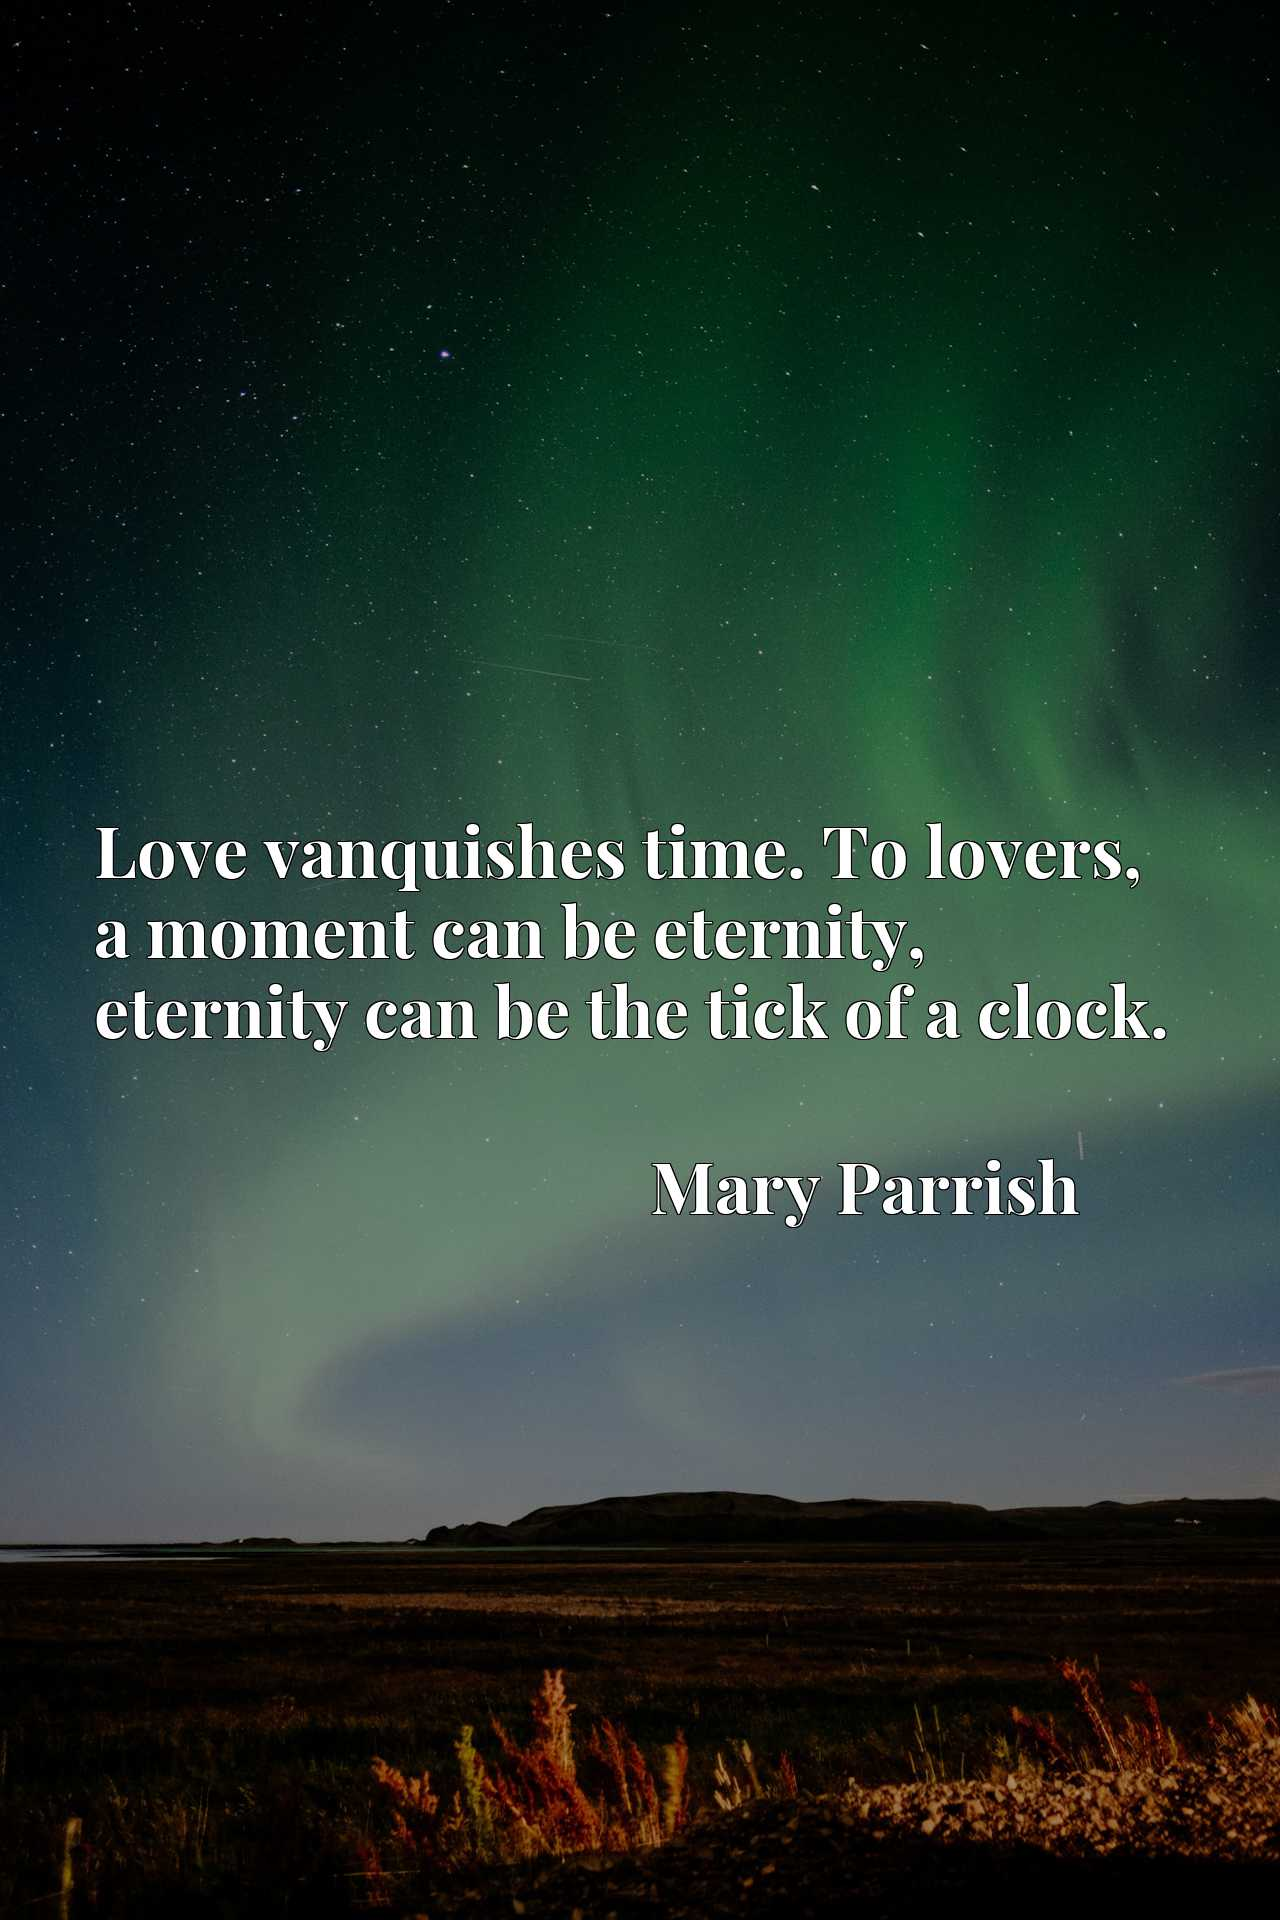 Love vanquishes time. To lovers, a moment can be eternity, eternity can be the tick of a clock.